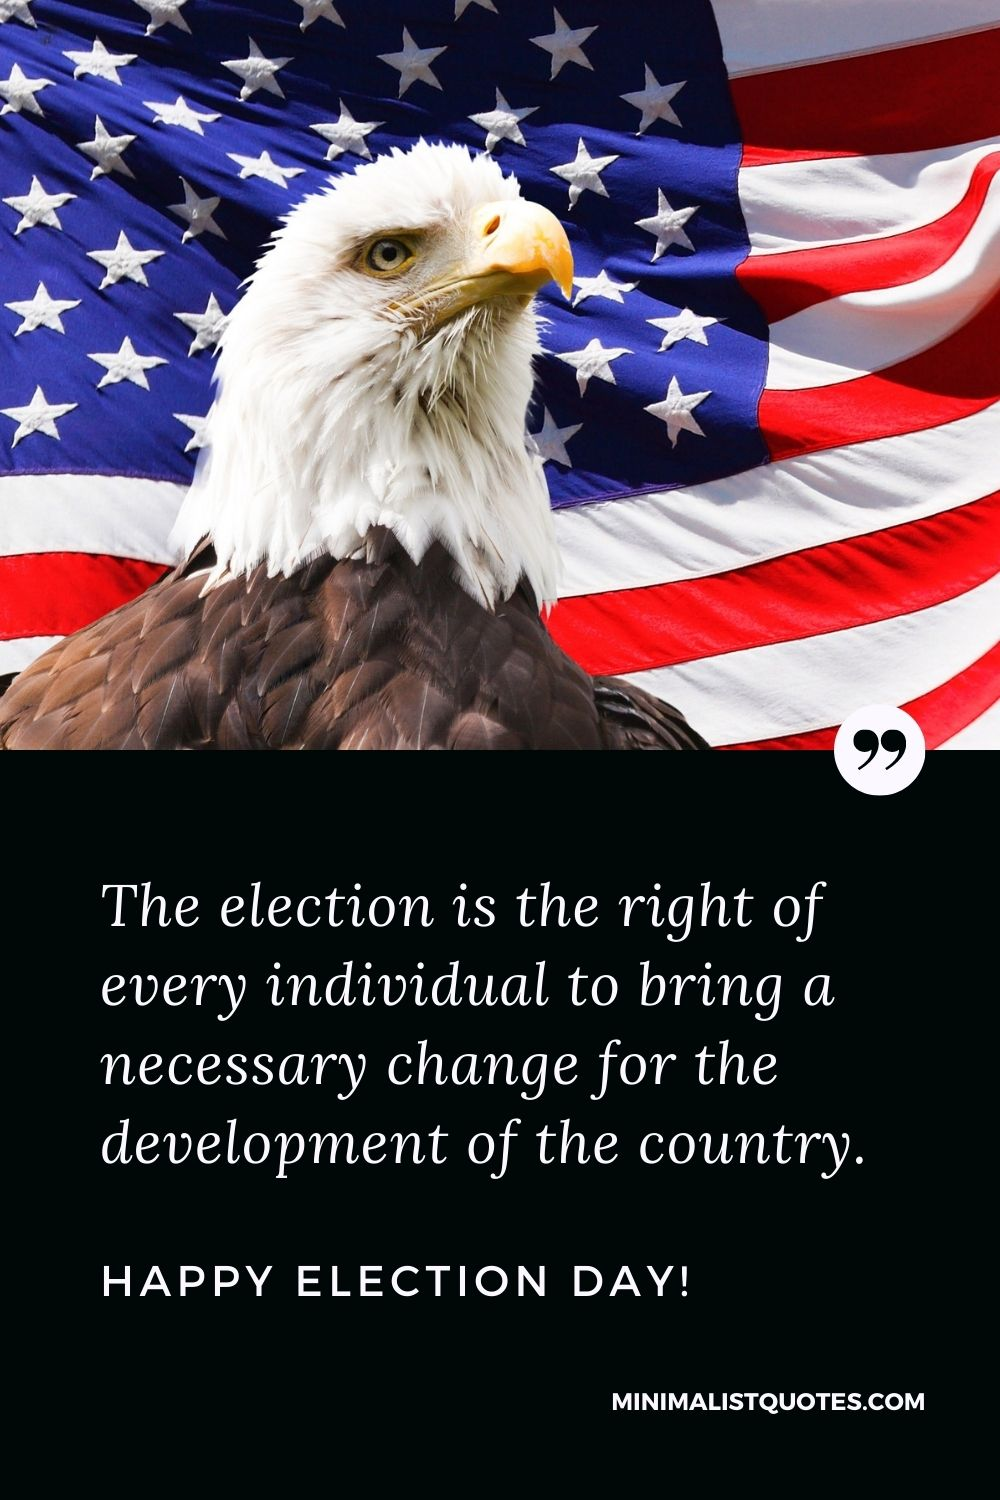 Election Day Quote, Message & Wish With Image: The election is the rightof every individual to bring a necessary change for the developmentof the country. Happy Election Day!